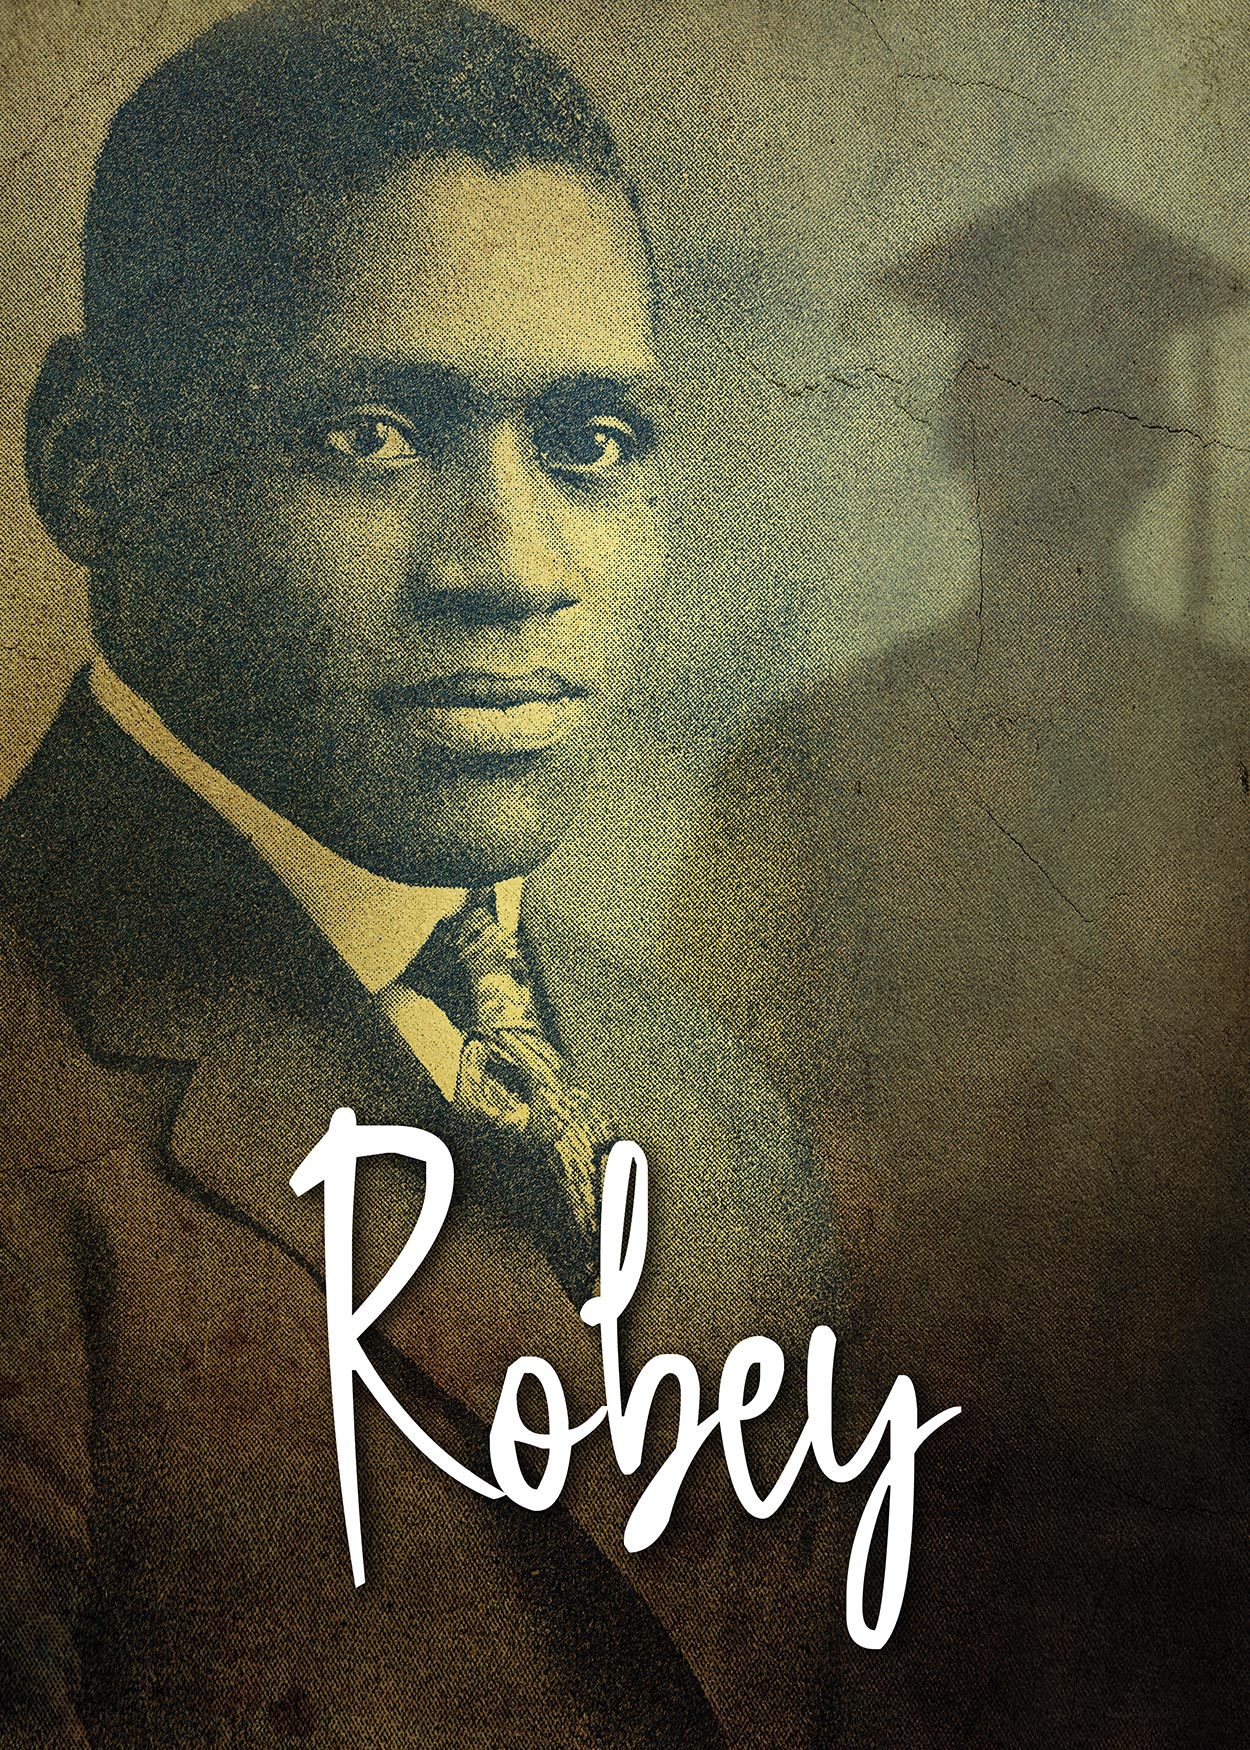 Key Art from Robey (2019). Image of Paul Robeson from when he graduated Rutgers University (then College) in 1919.